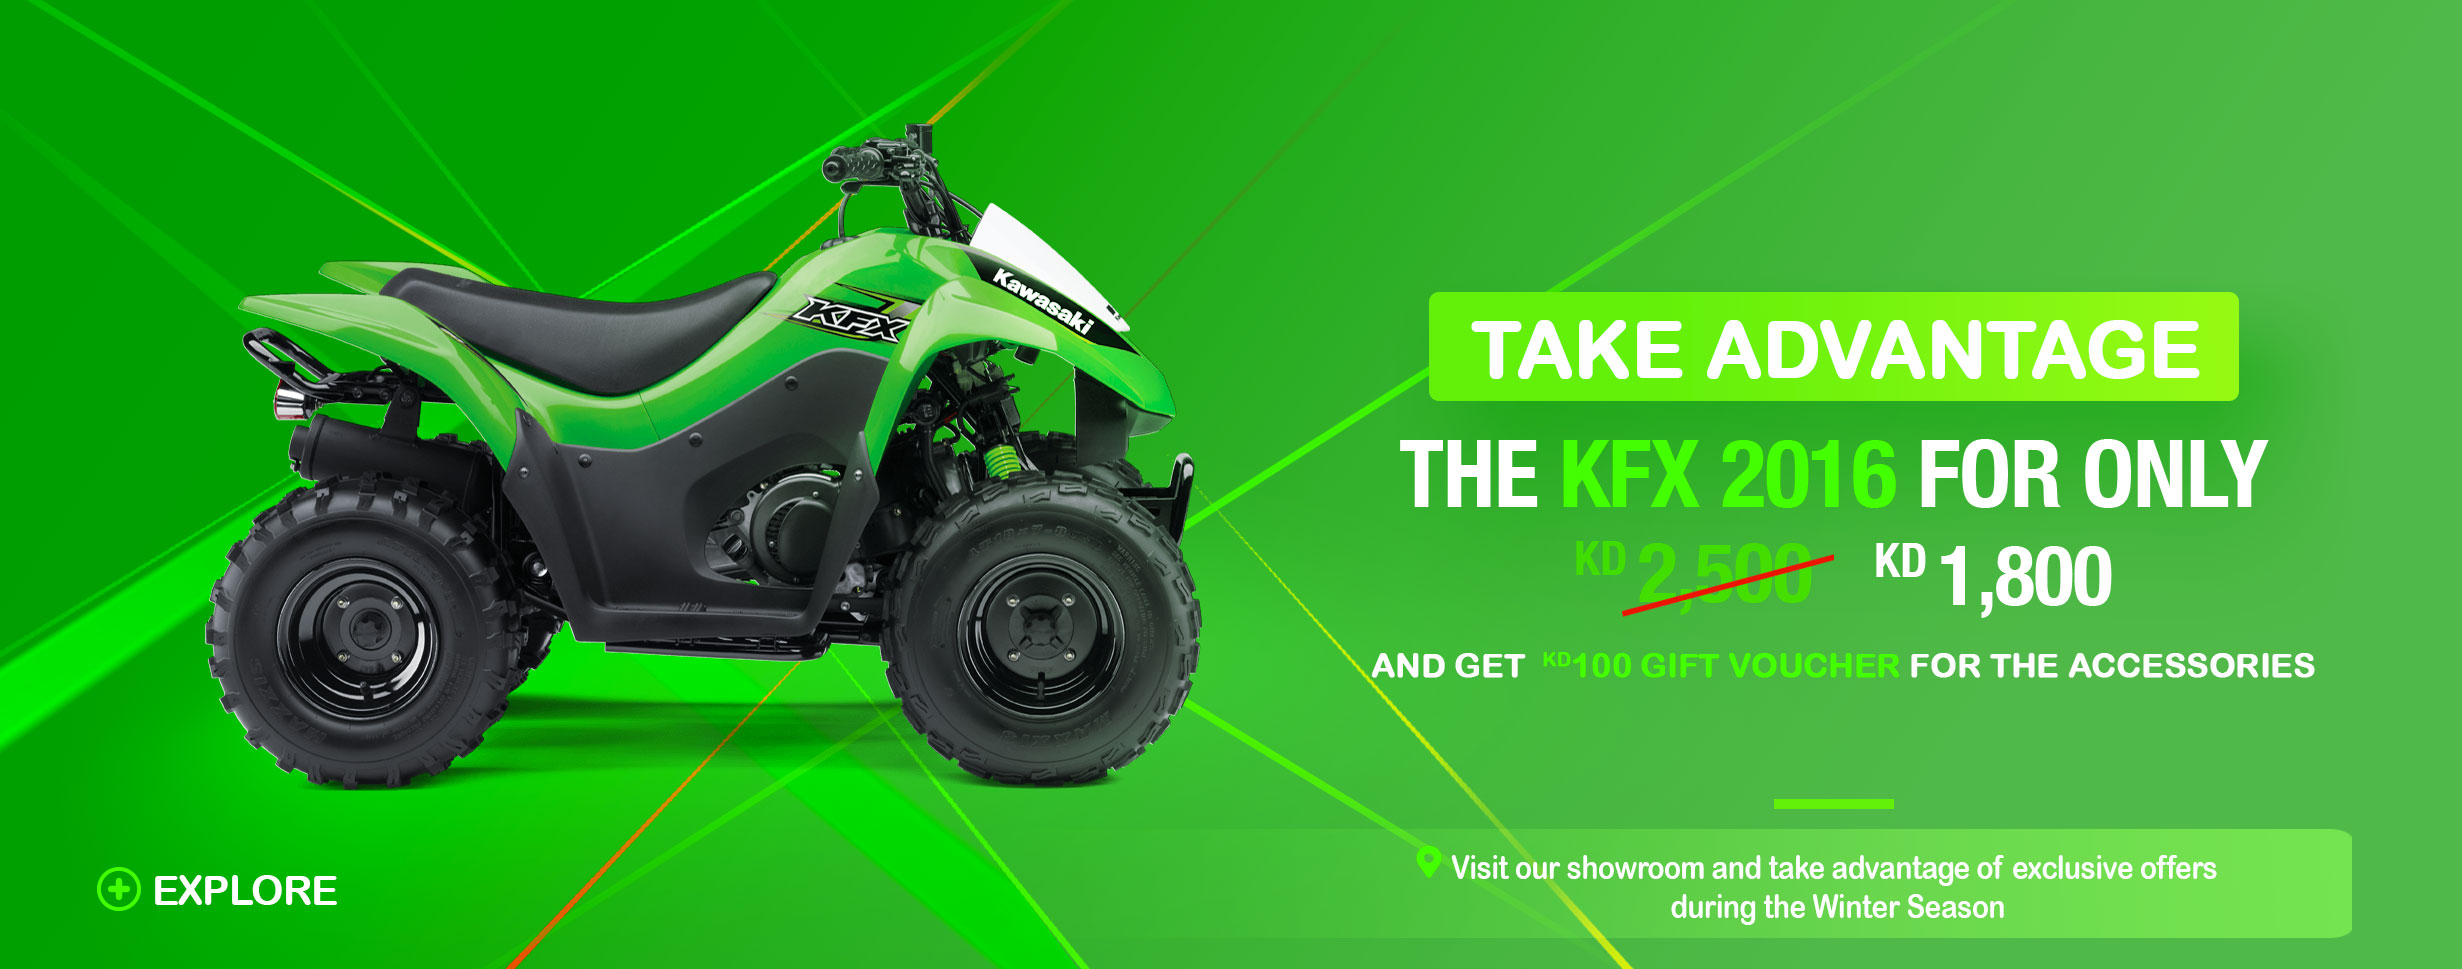 THE KAWASAKI  2016 KFX PRICED FOR ONLY KD 1,800   Image